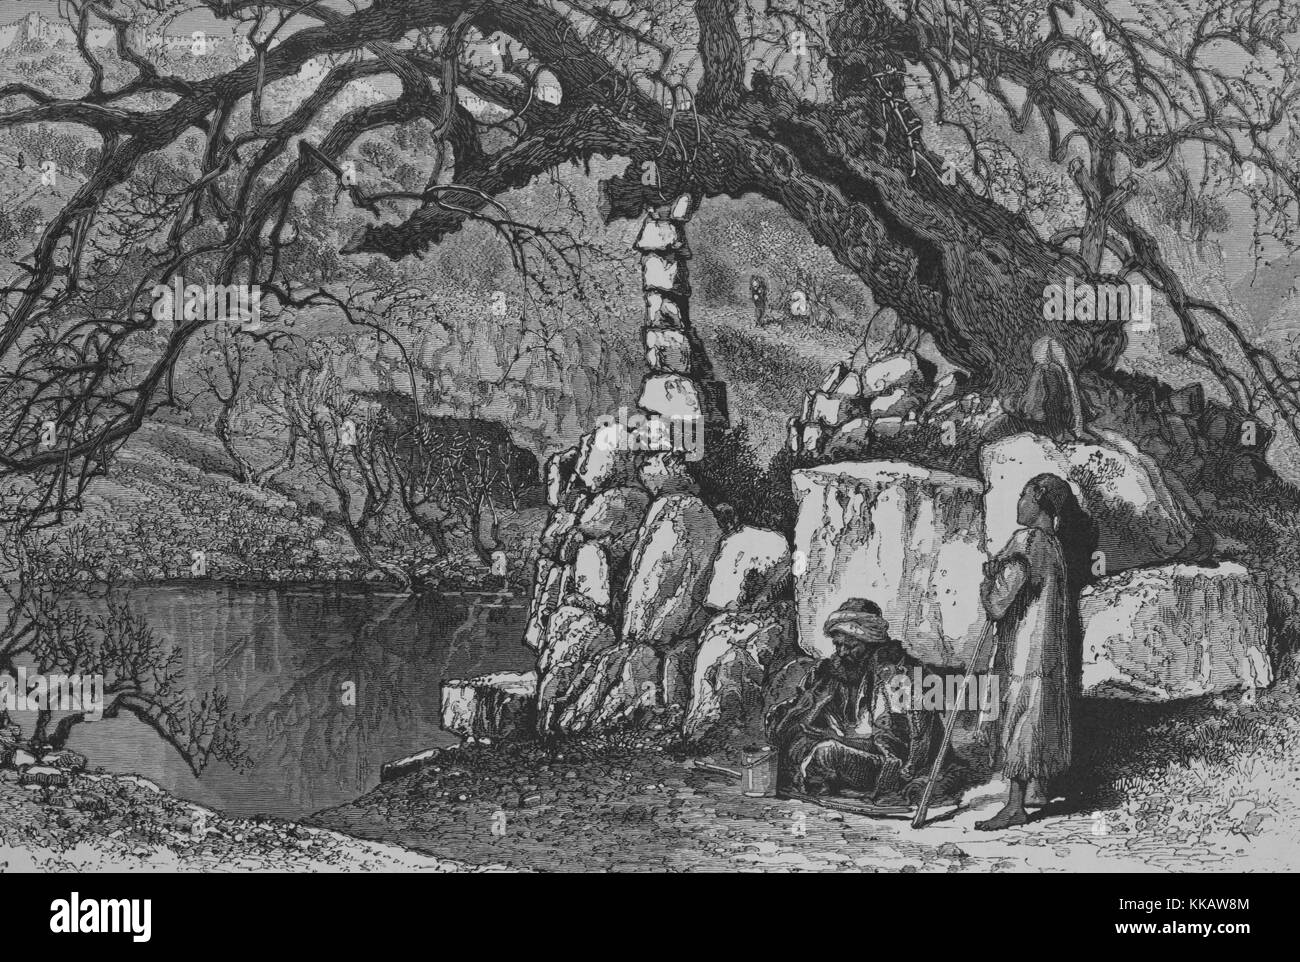 An engraving that depicts the lower Pool of Siloam, the mulberry-tree that is shown supported by stones is the supposed - Stock Image